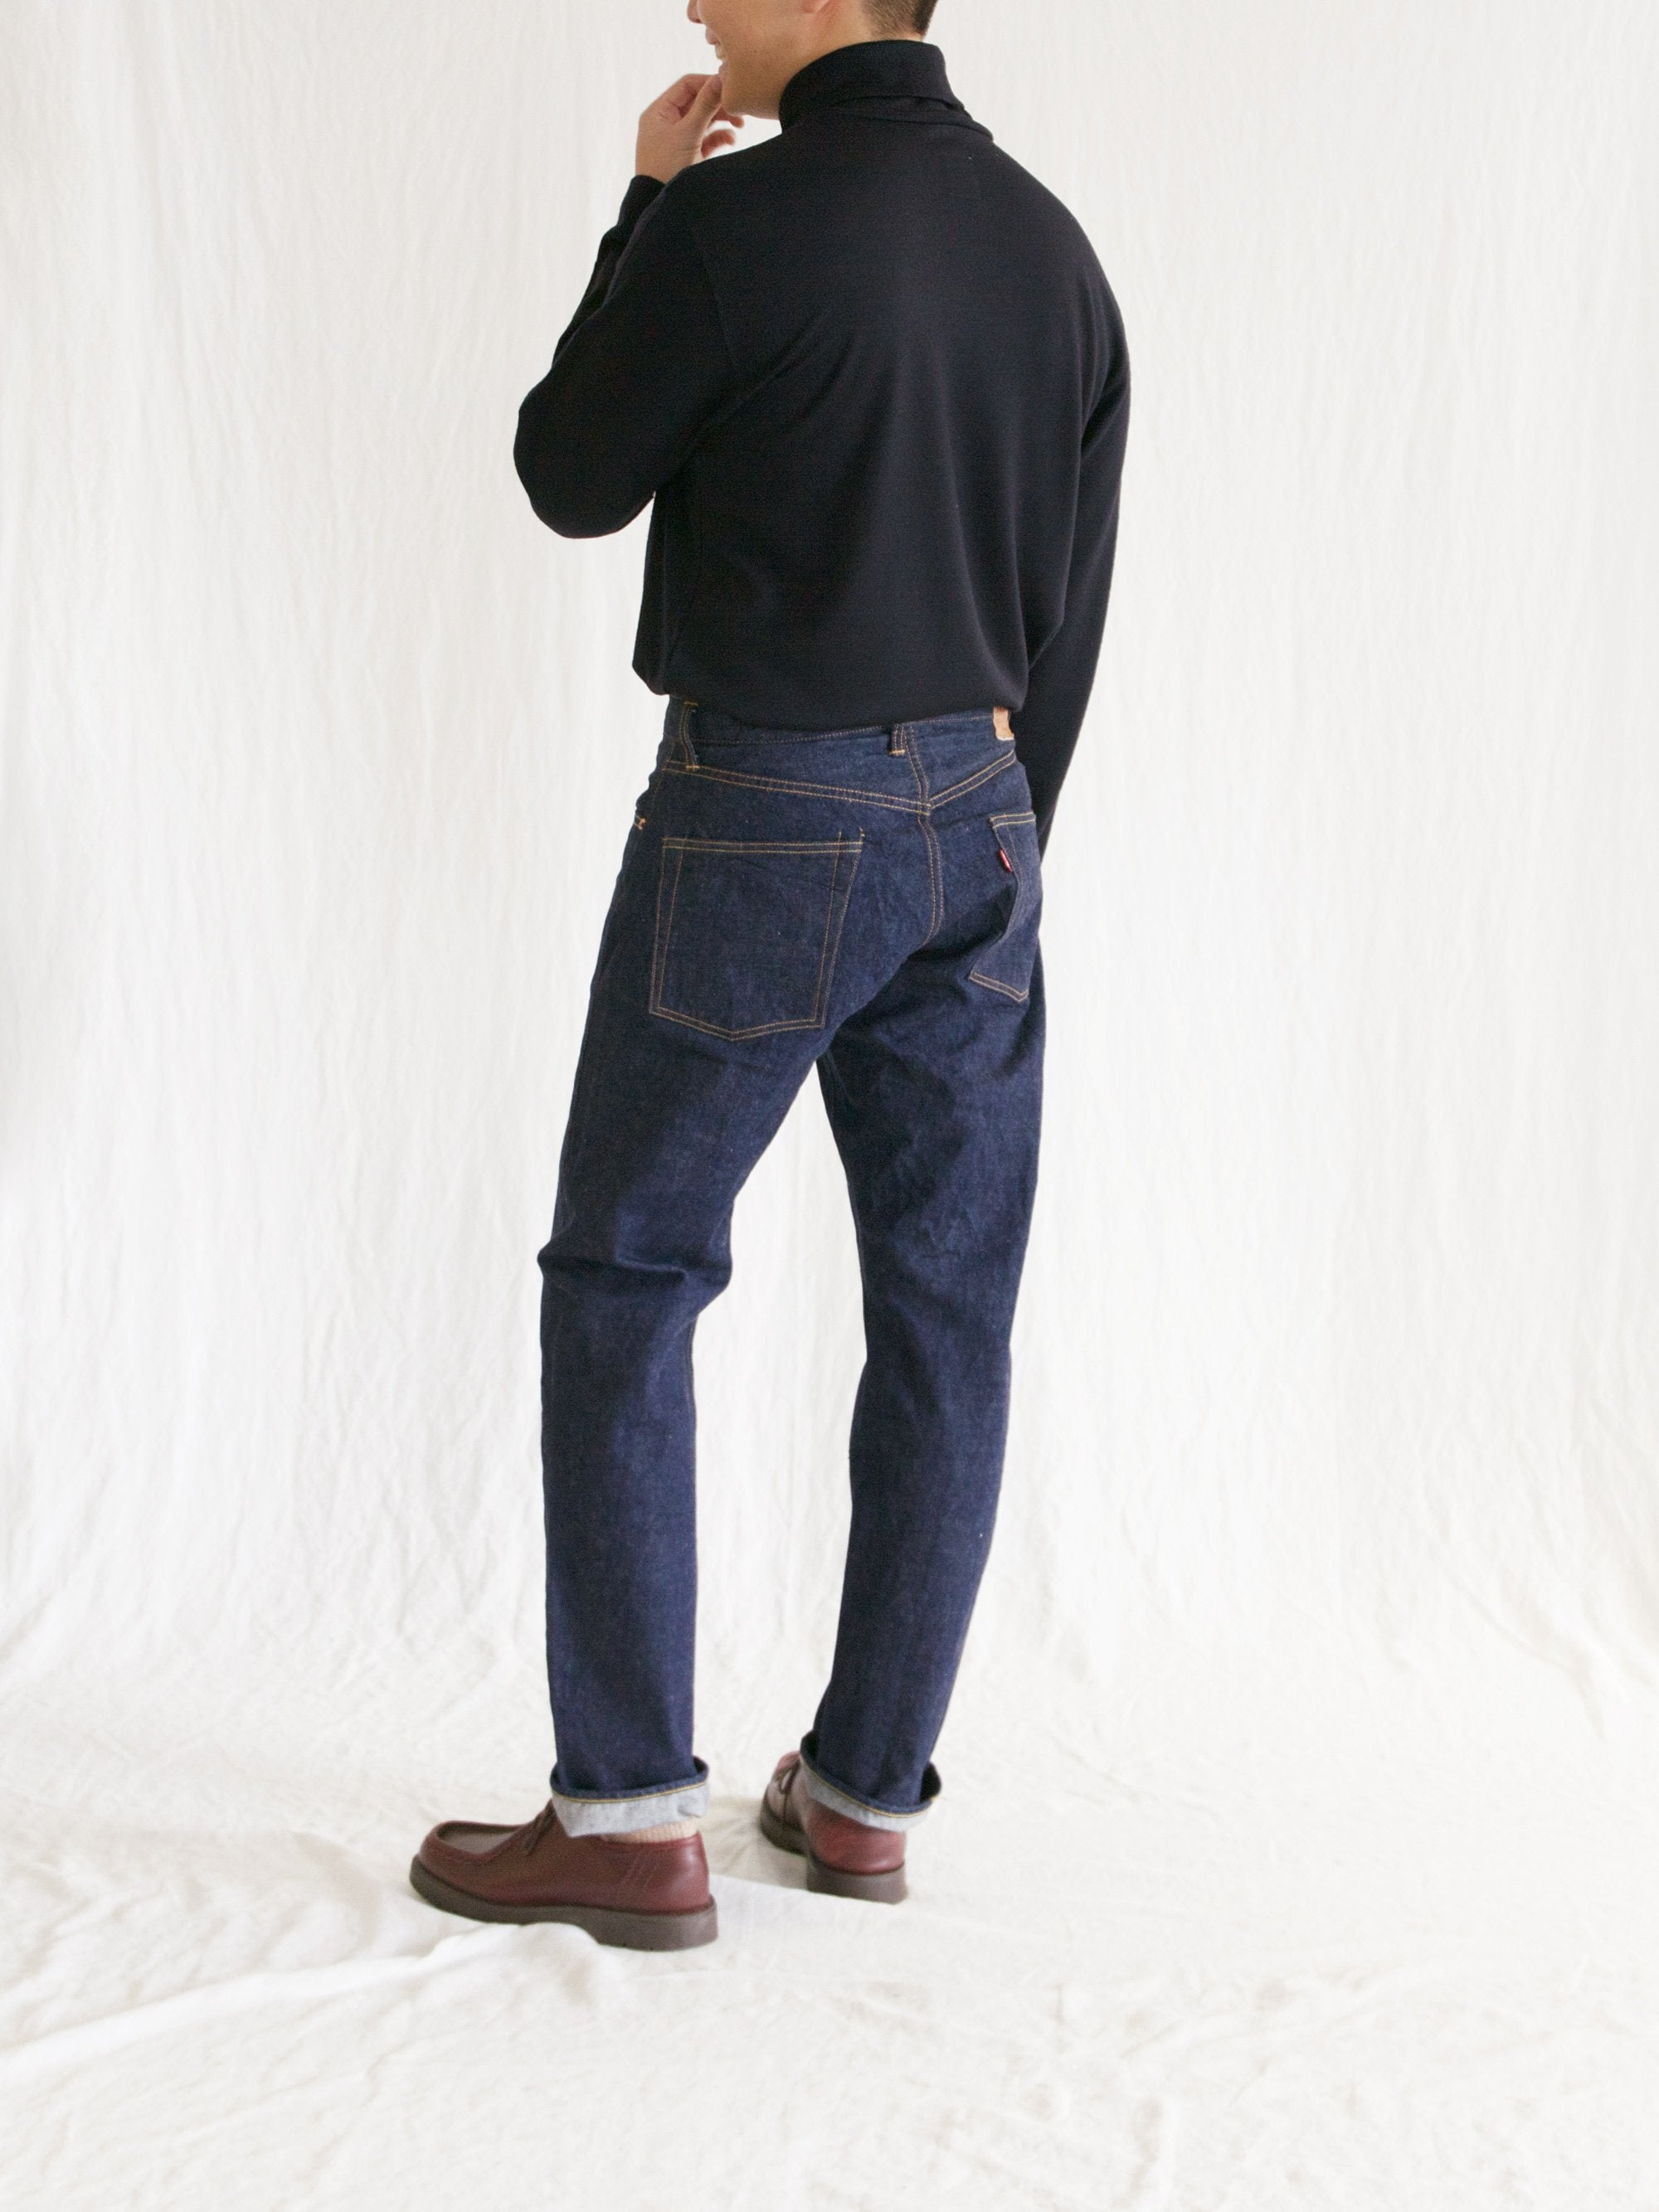 Namu Shop - Kaptain Sunshine East Coast Fit Denim Pants